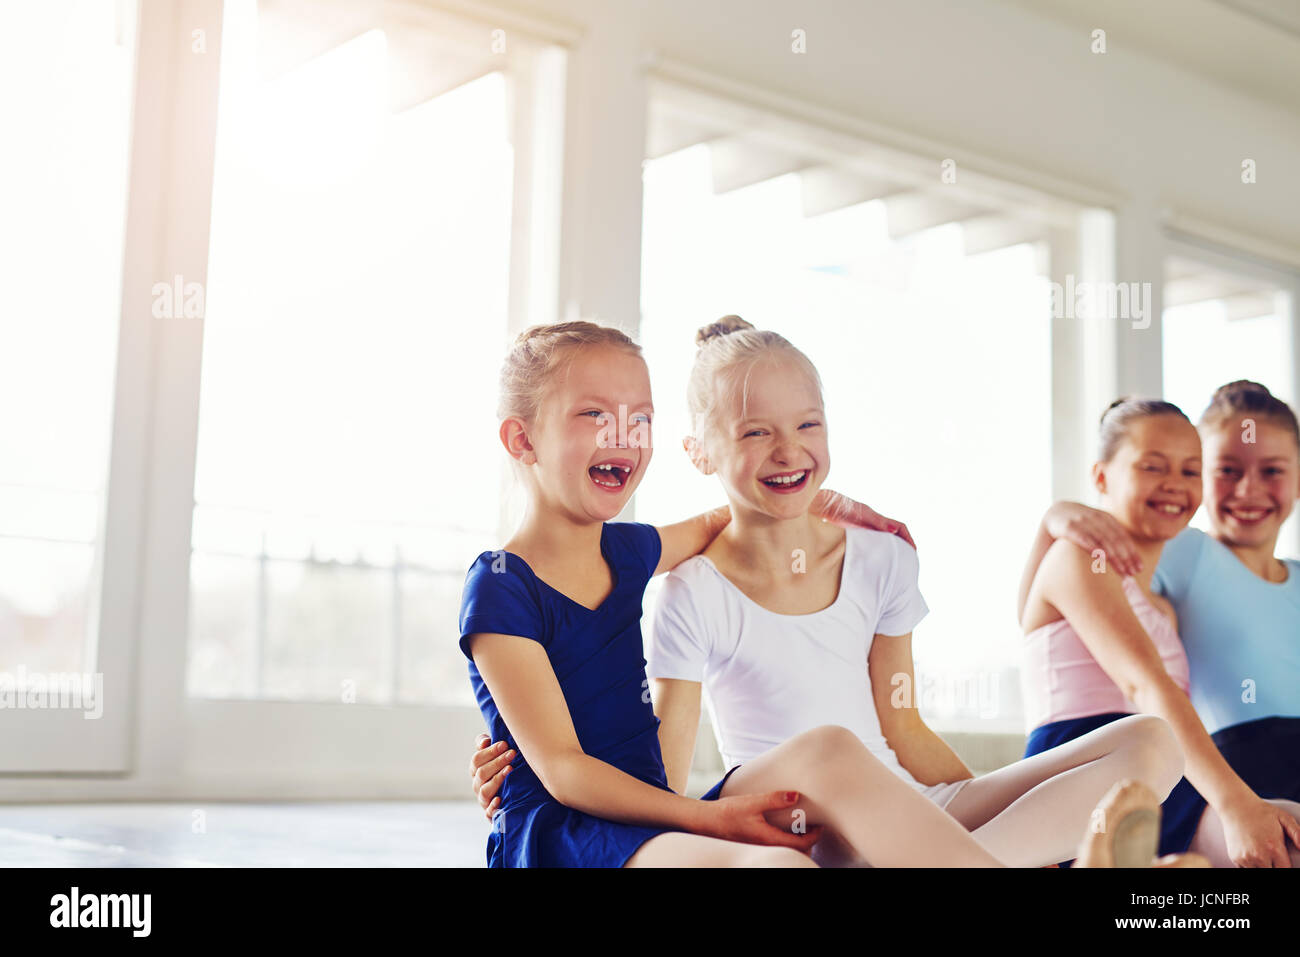 Cute little girls embracing and laughing sitting on floor in ballet class together. - Stock Image